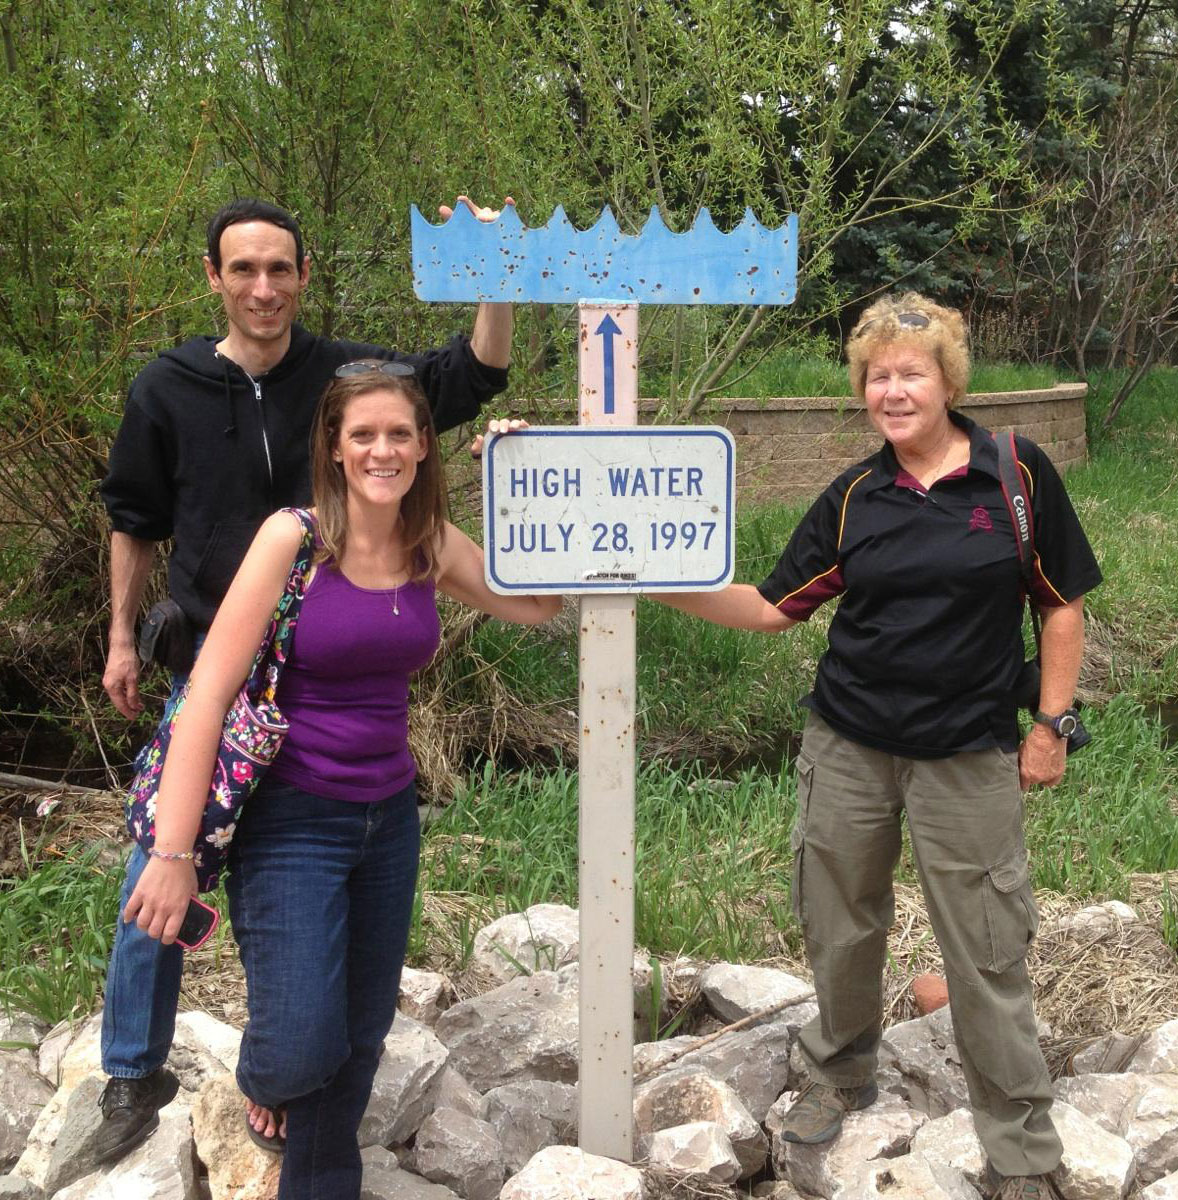 CoCoRaHS coordinators Tony (WY), Melissa (FL), and Nancy (AZ) at a high water mark for the 1997 Fort Collins, Colorado, flood.